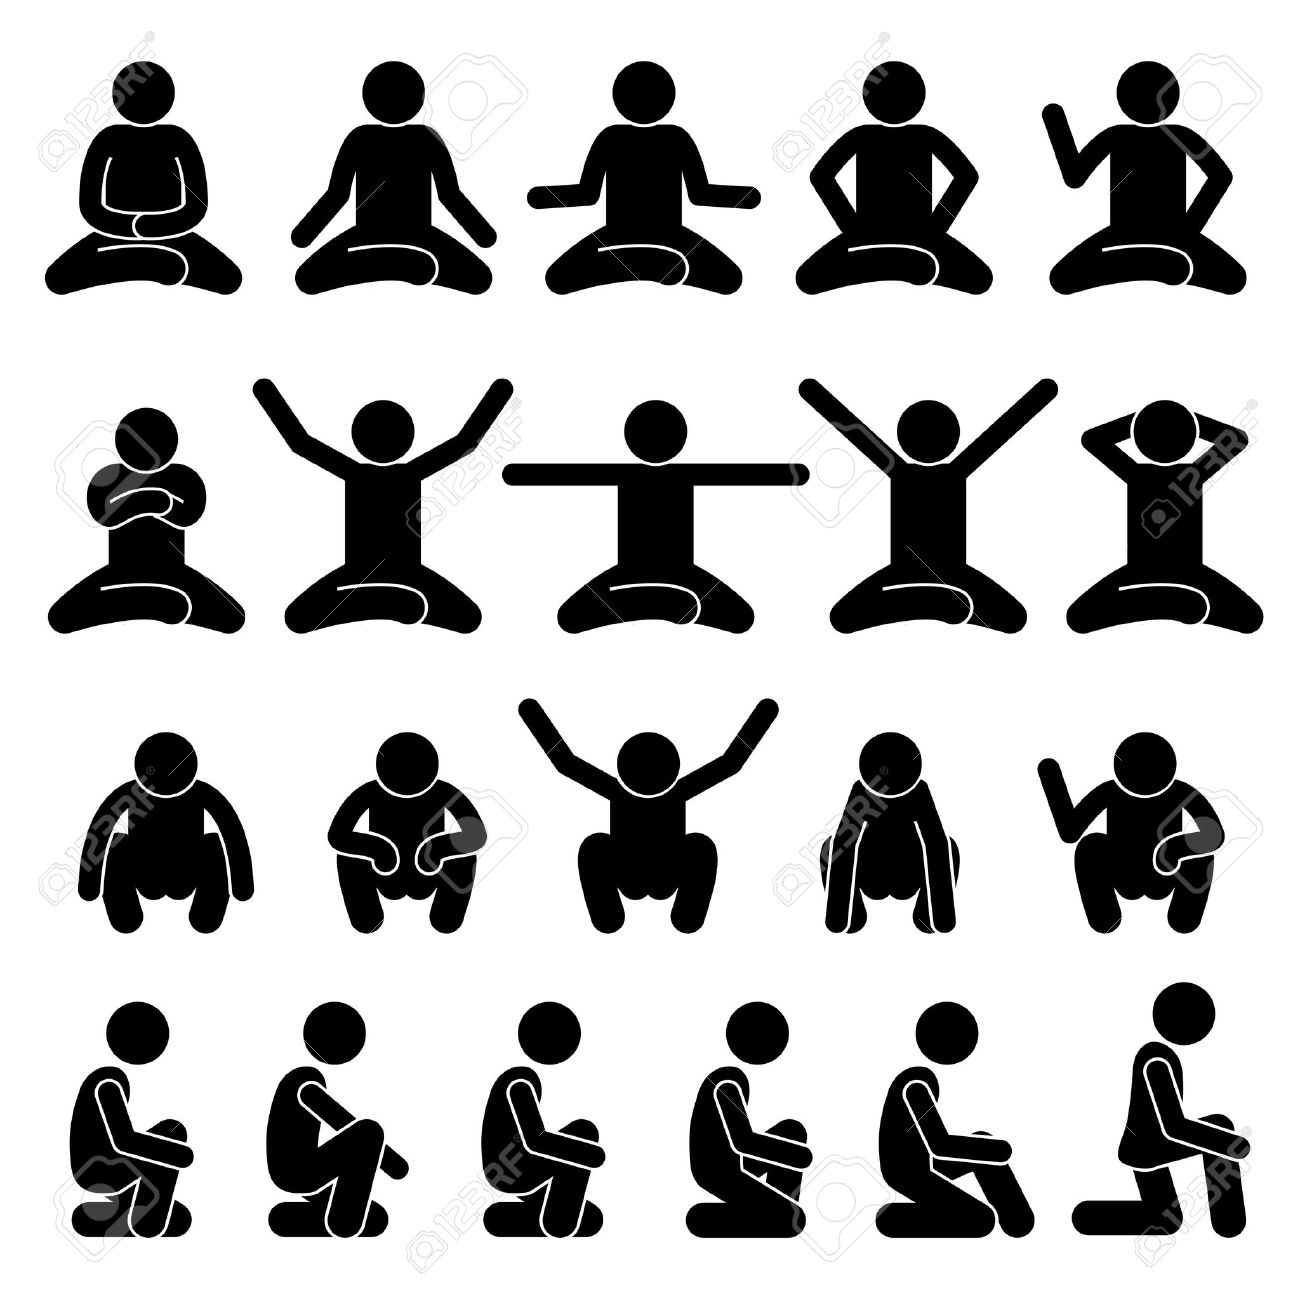 Human Man People Sitting and Squatting on the Floor Poses Postures Stick Figure Stickman Pictogram Icons - 65827012